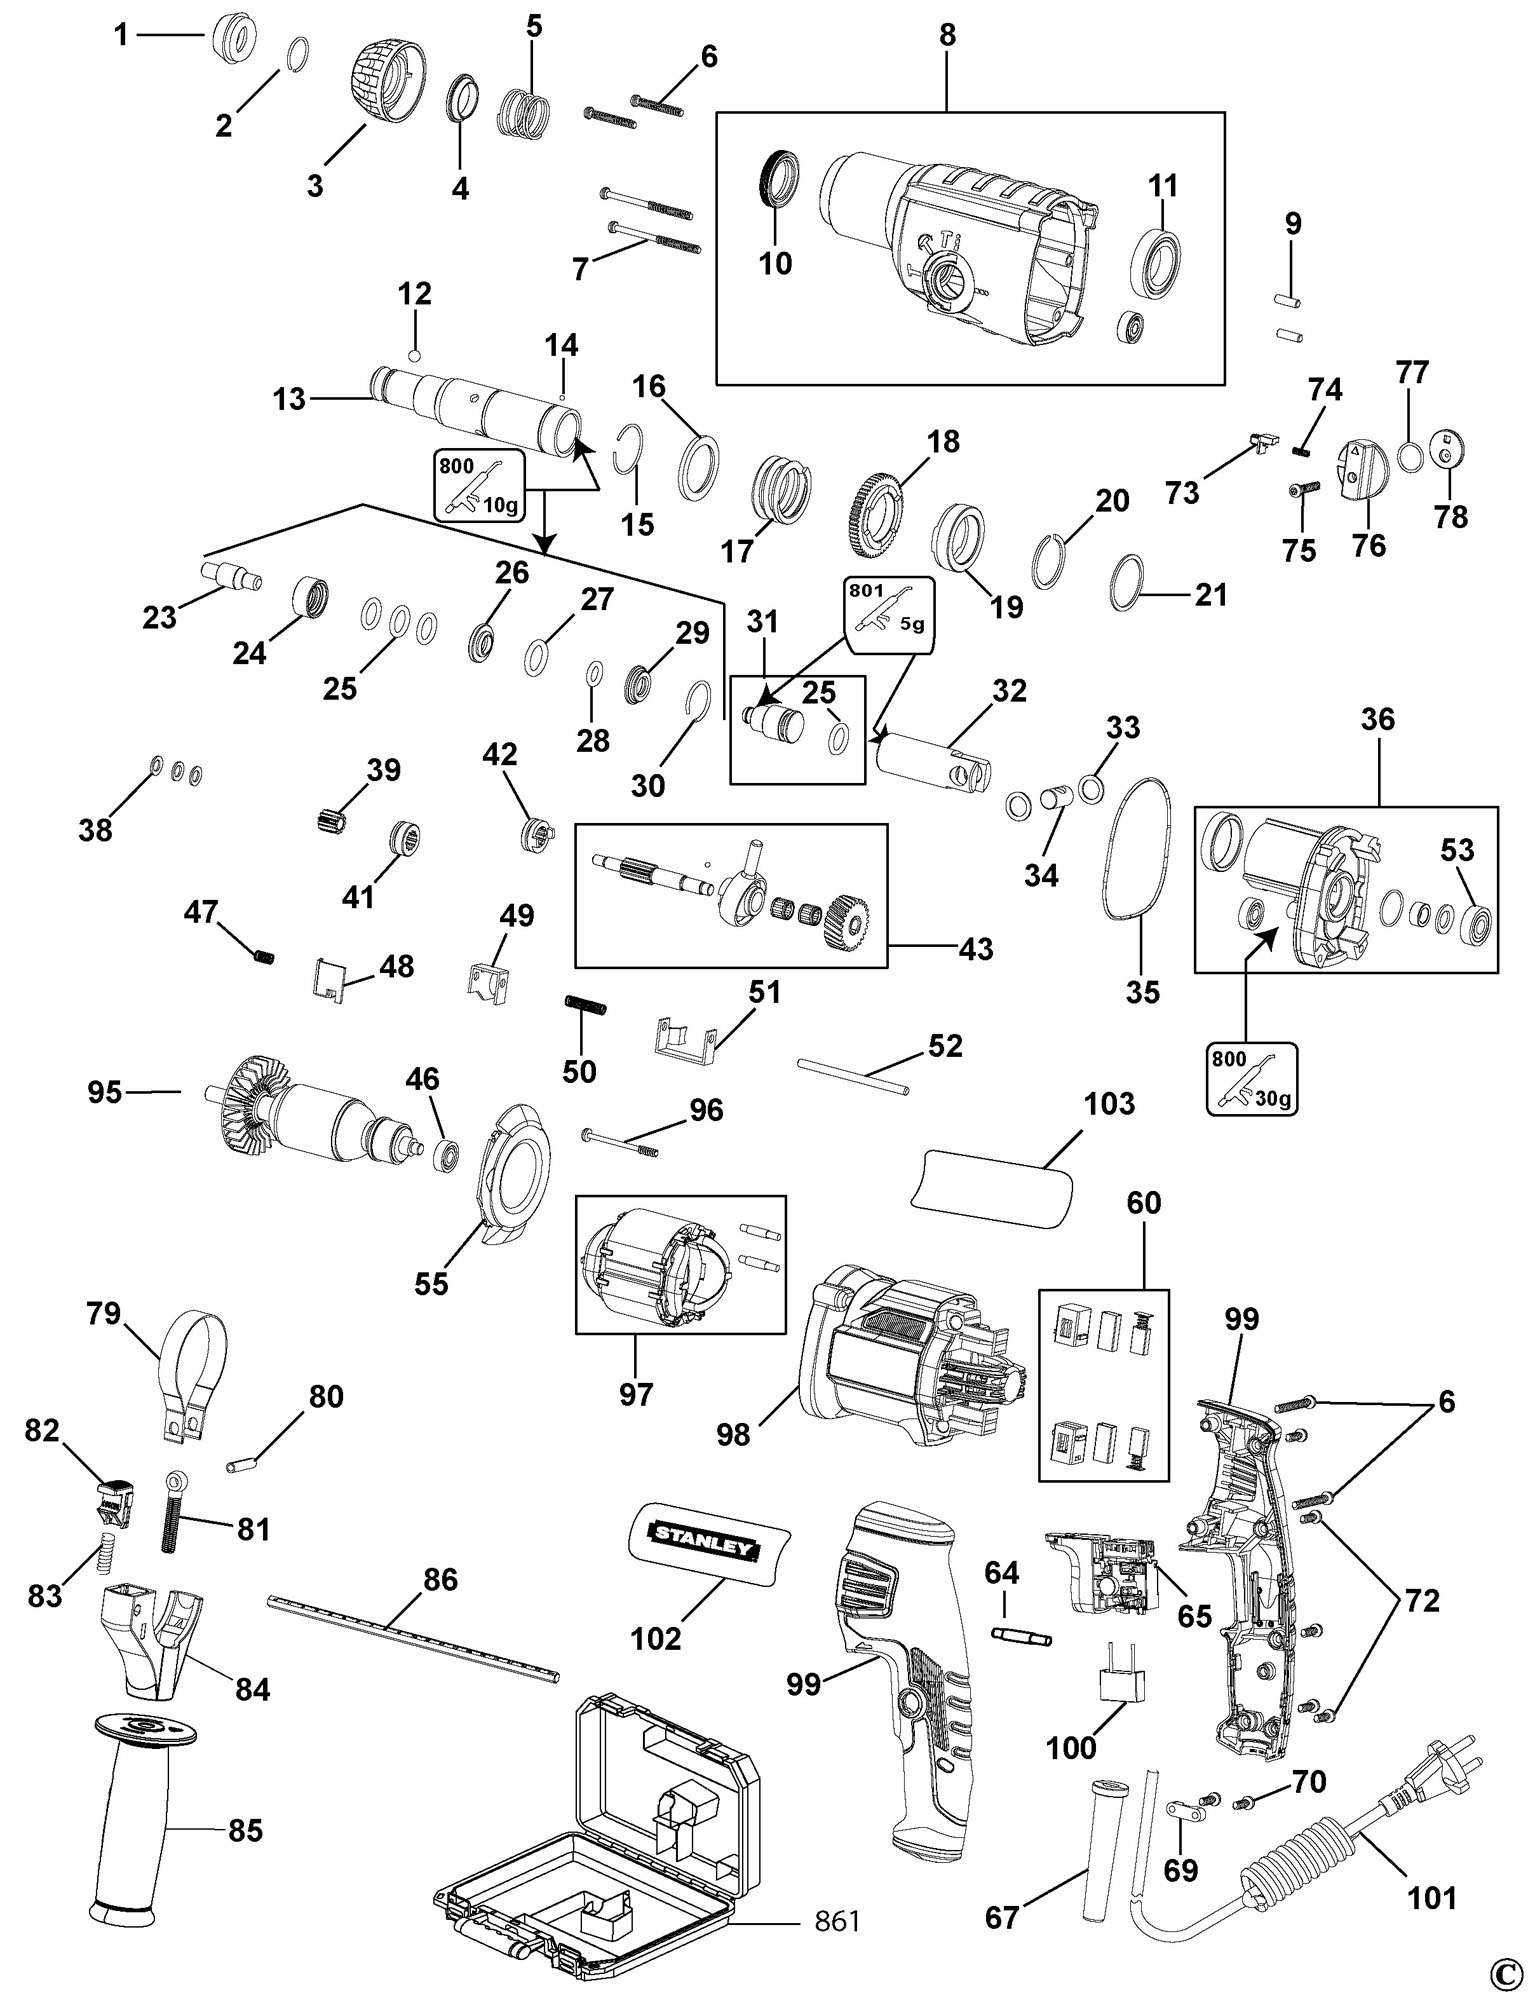 parts of a drill bit diagram bmw z3 radio wiring spares for stanley fme500 rotary hammer type 1